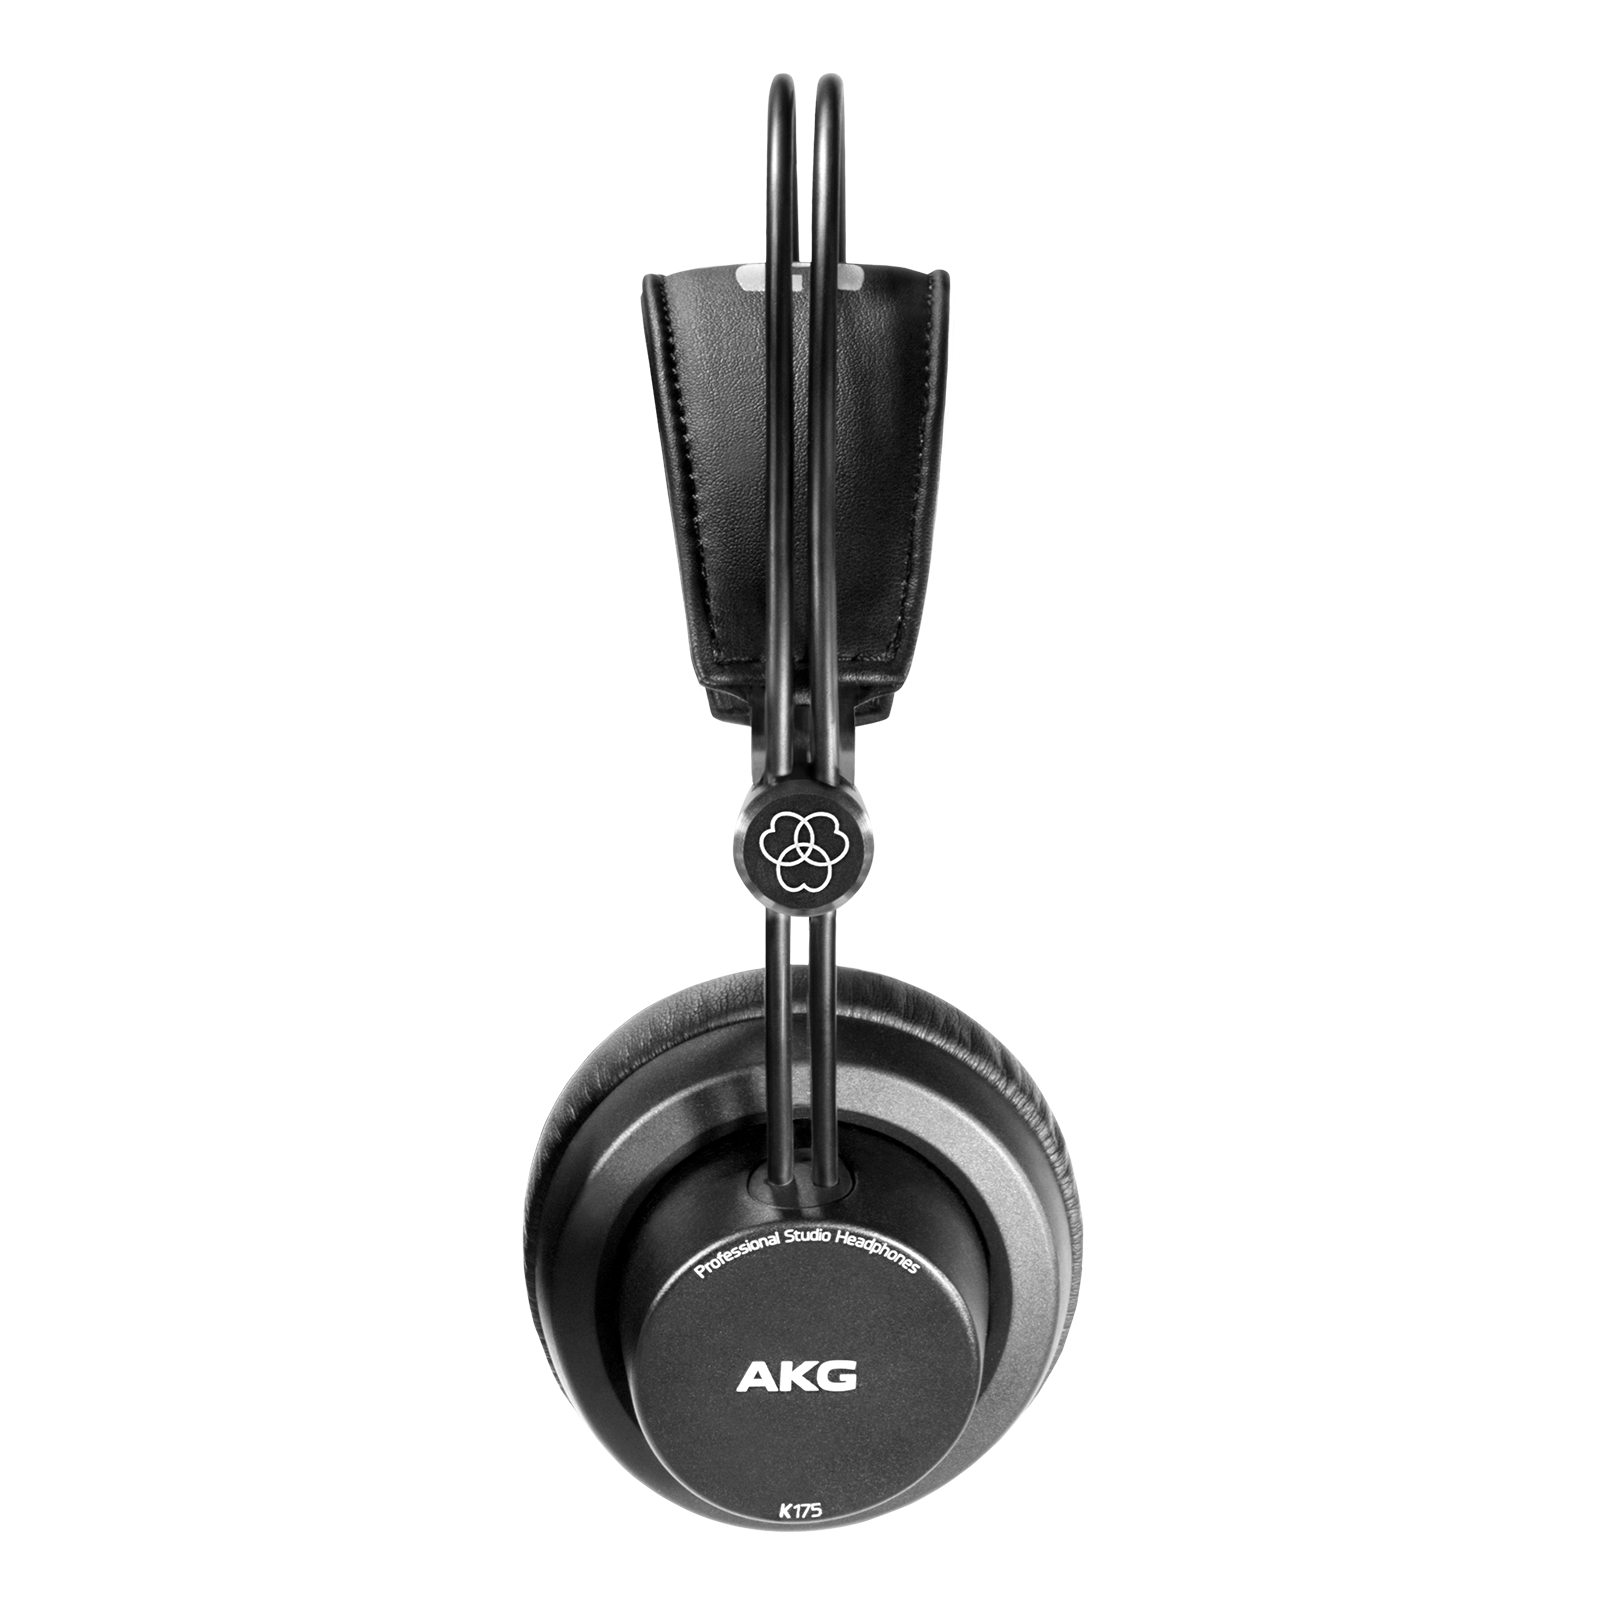 K175 - Black - On-ear, closed-back, foldable studio headphones - Left